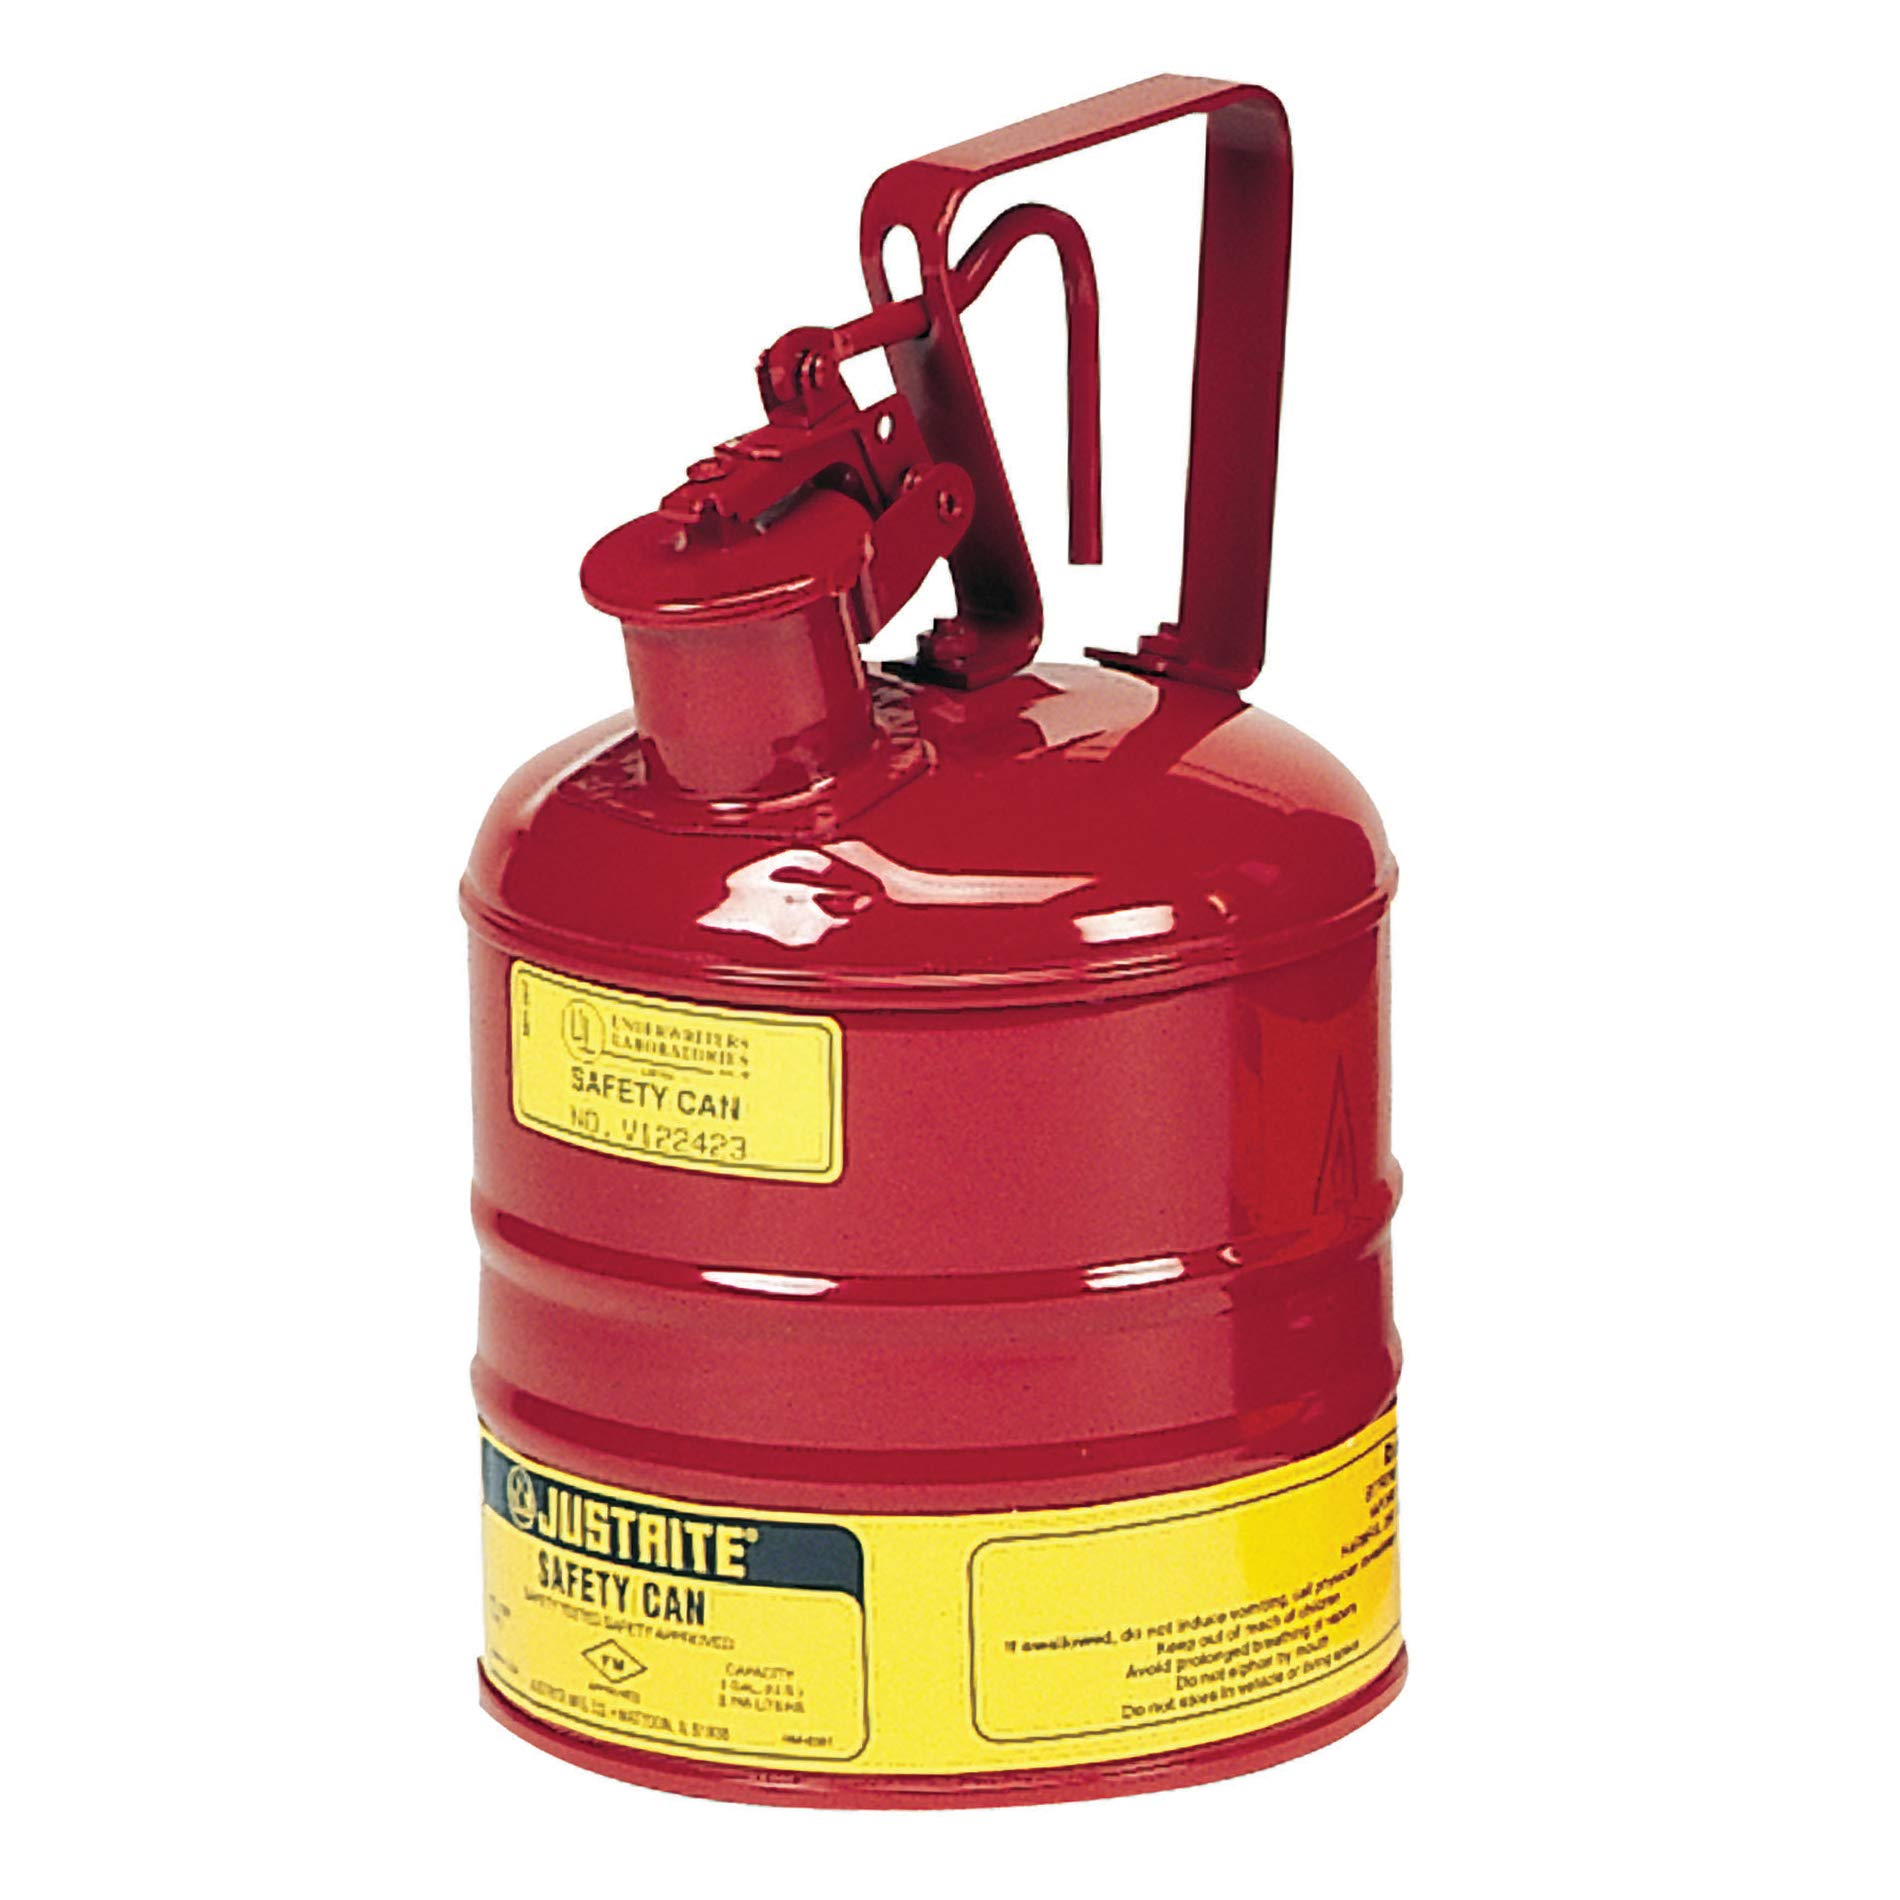 Justrite 10301 Type 1 Safety Can, Flammables, 1 Gal, Red